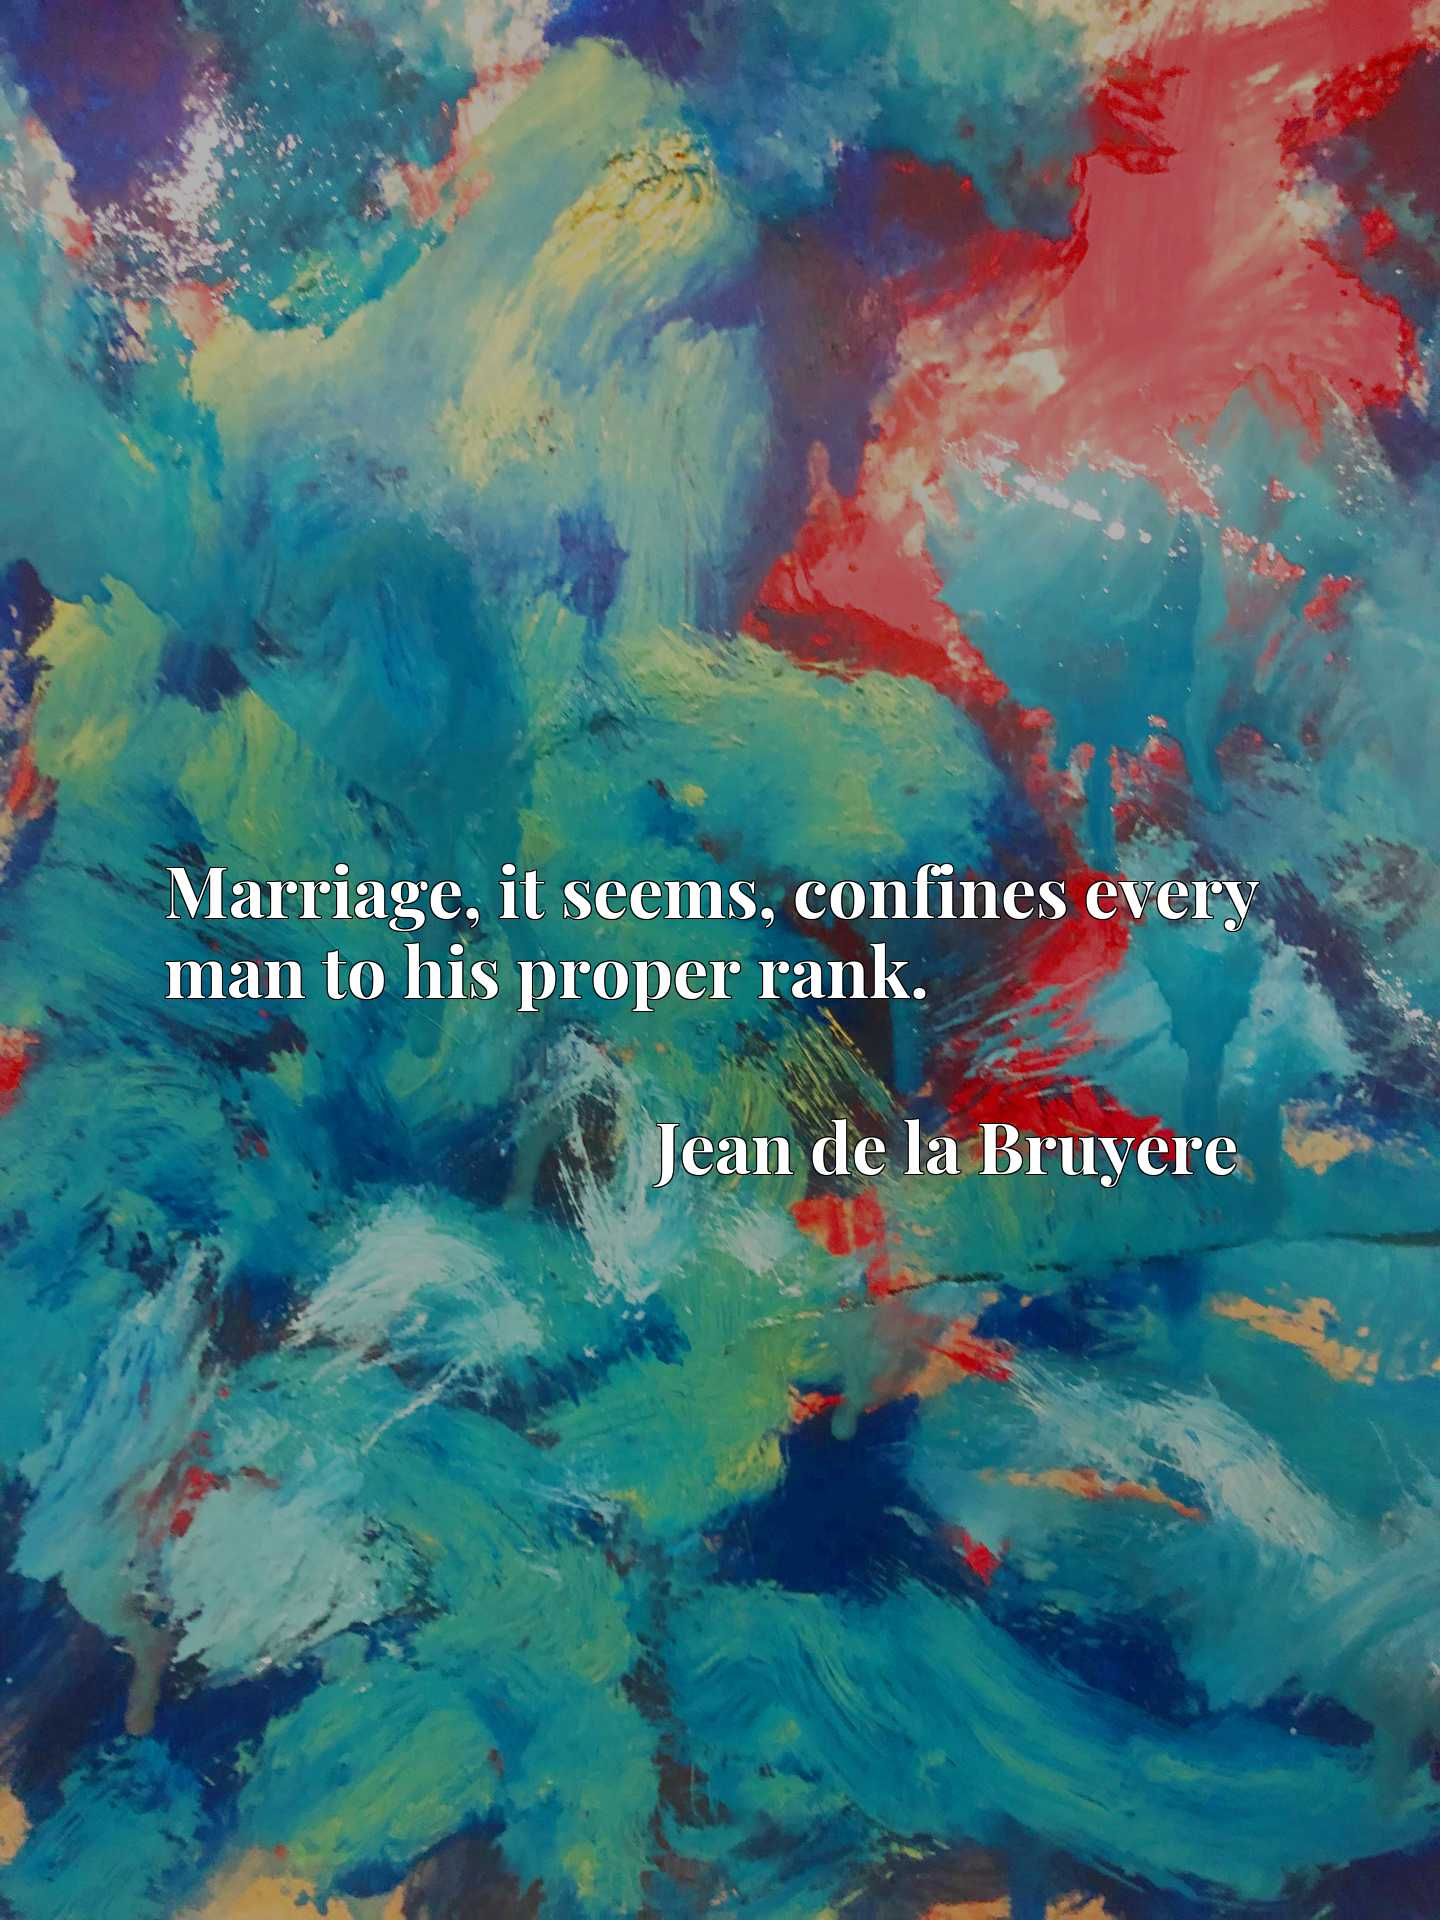 Quote Picture :Marriage, it seems, confines every man to his proper rank.